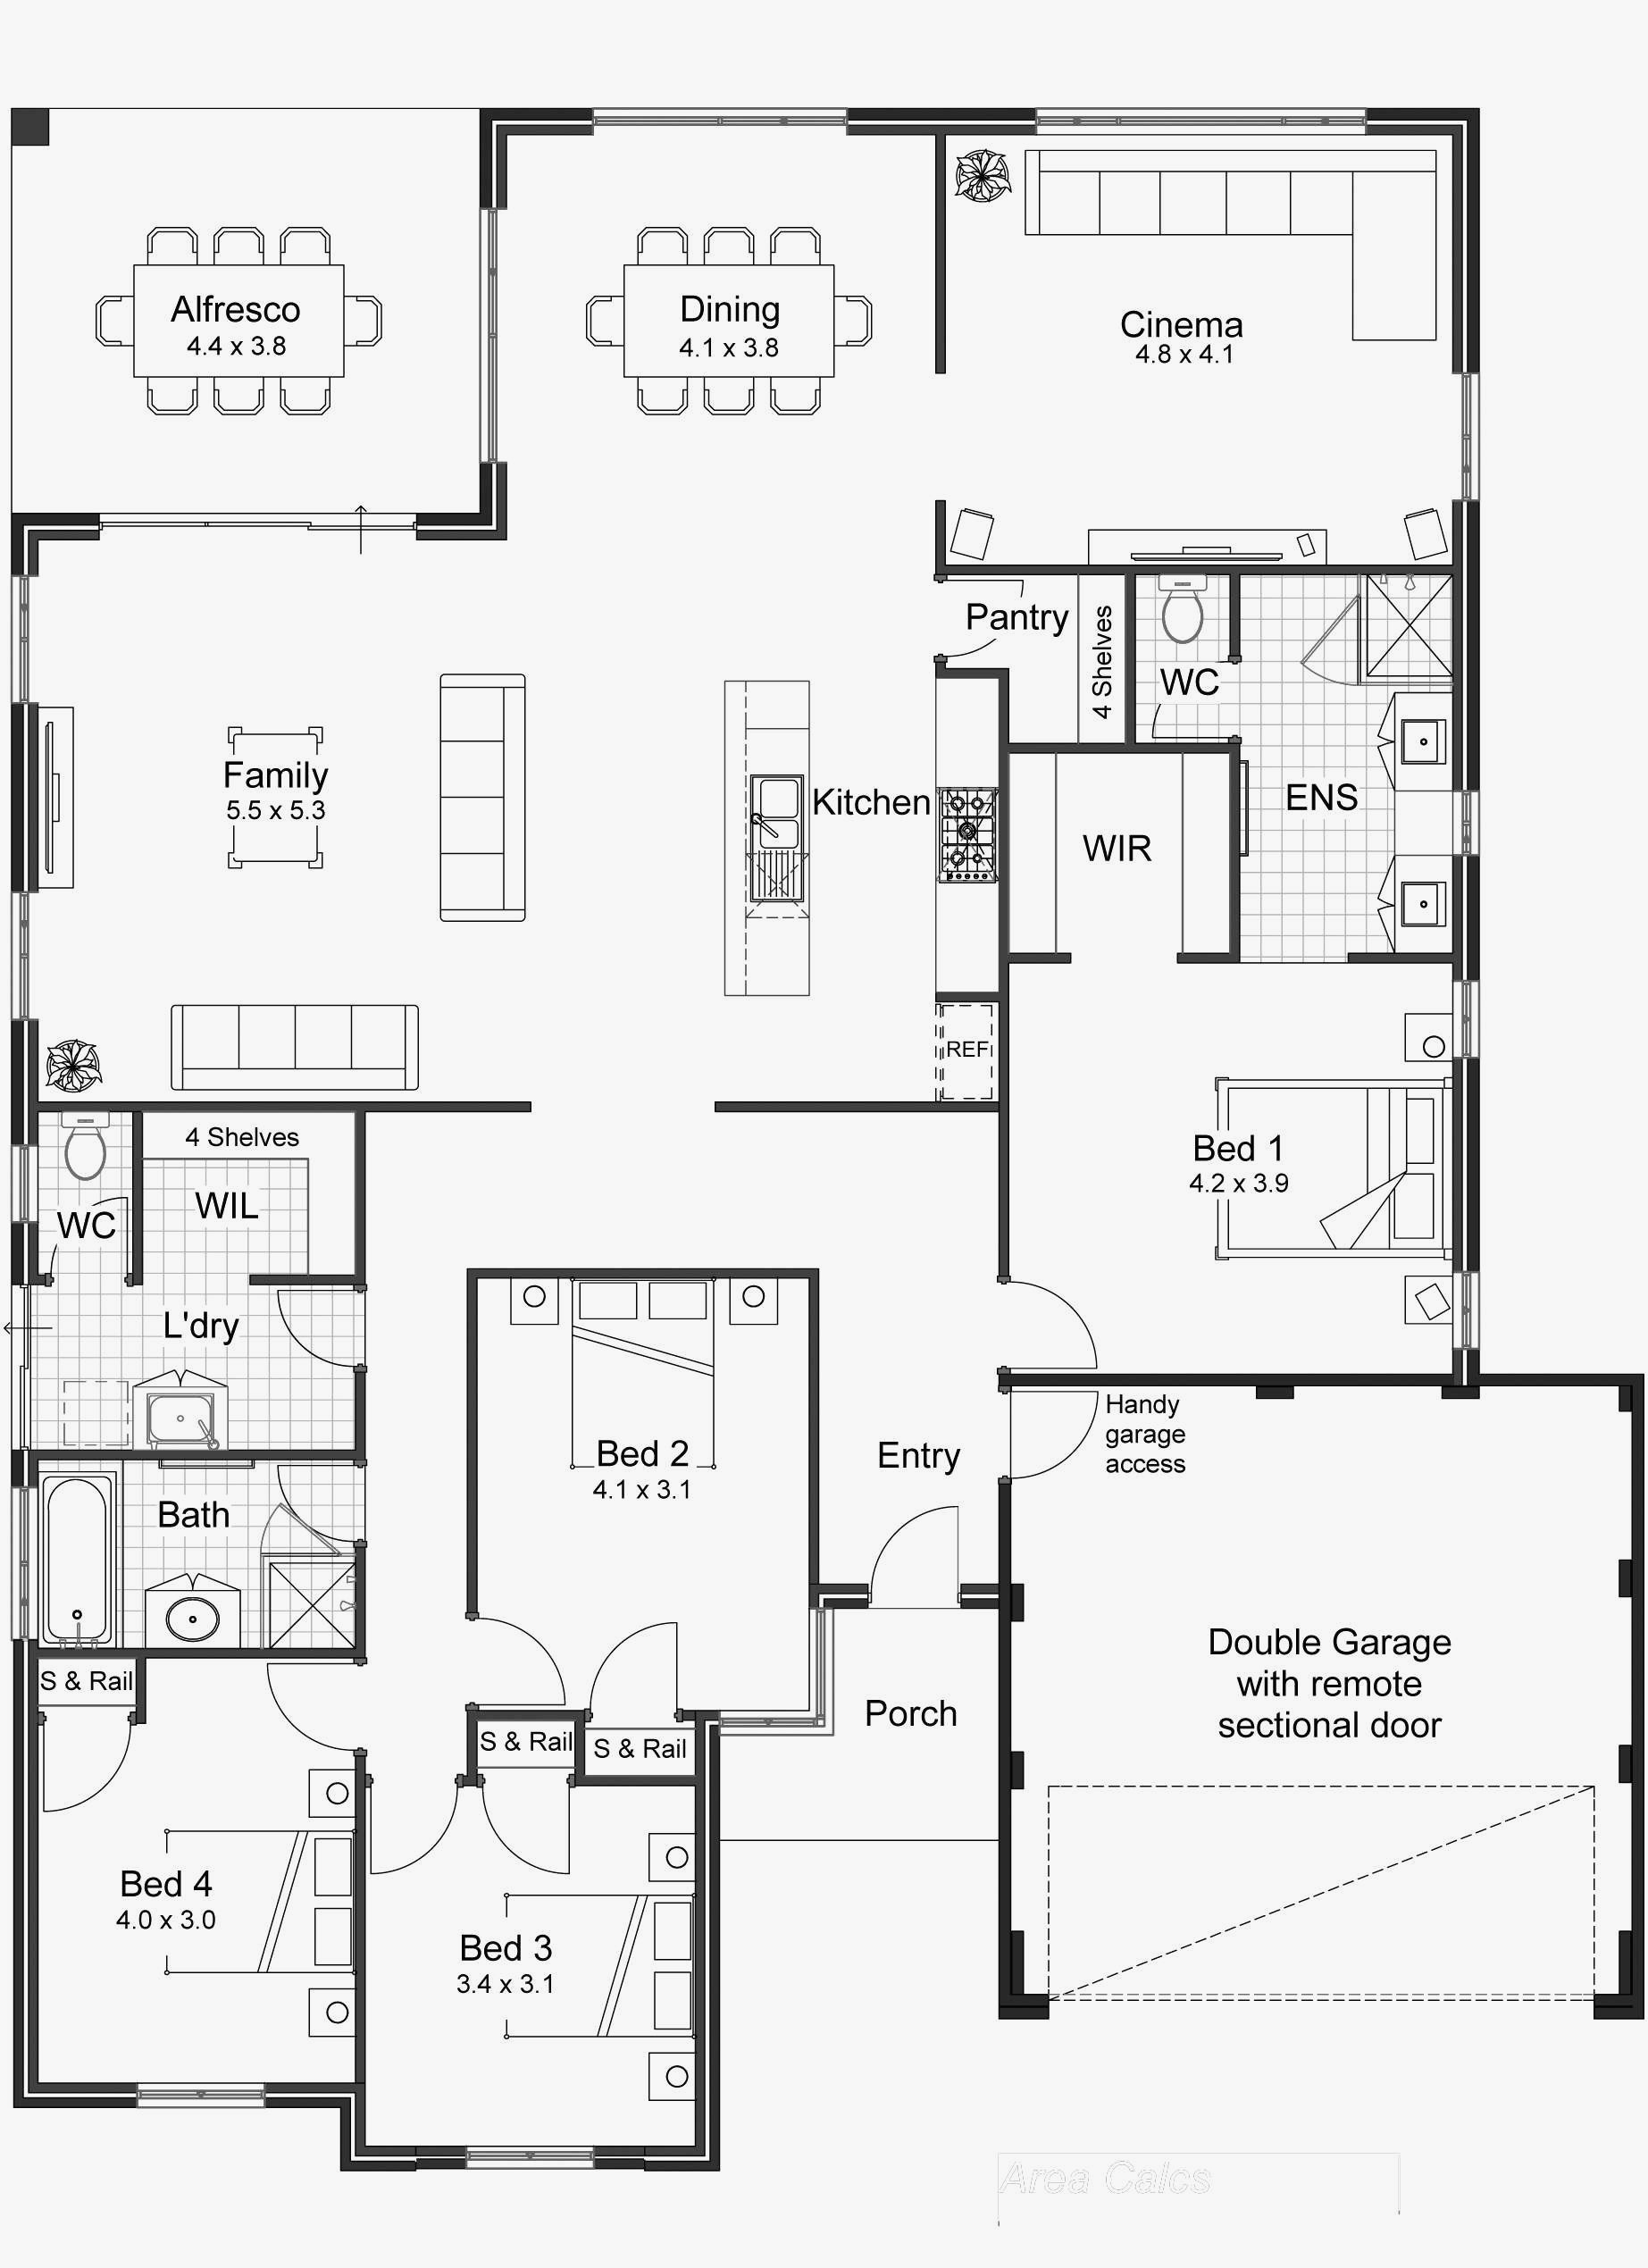 Simple Open Floor Plans Awesome 58 Inspirational Most Efficient Floor Plans Stock